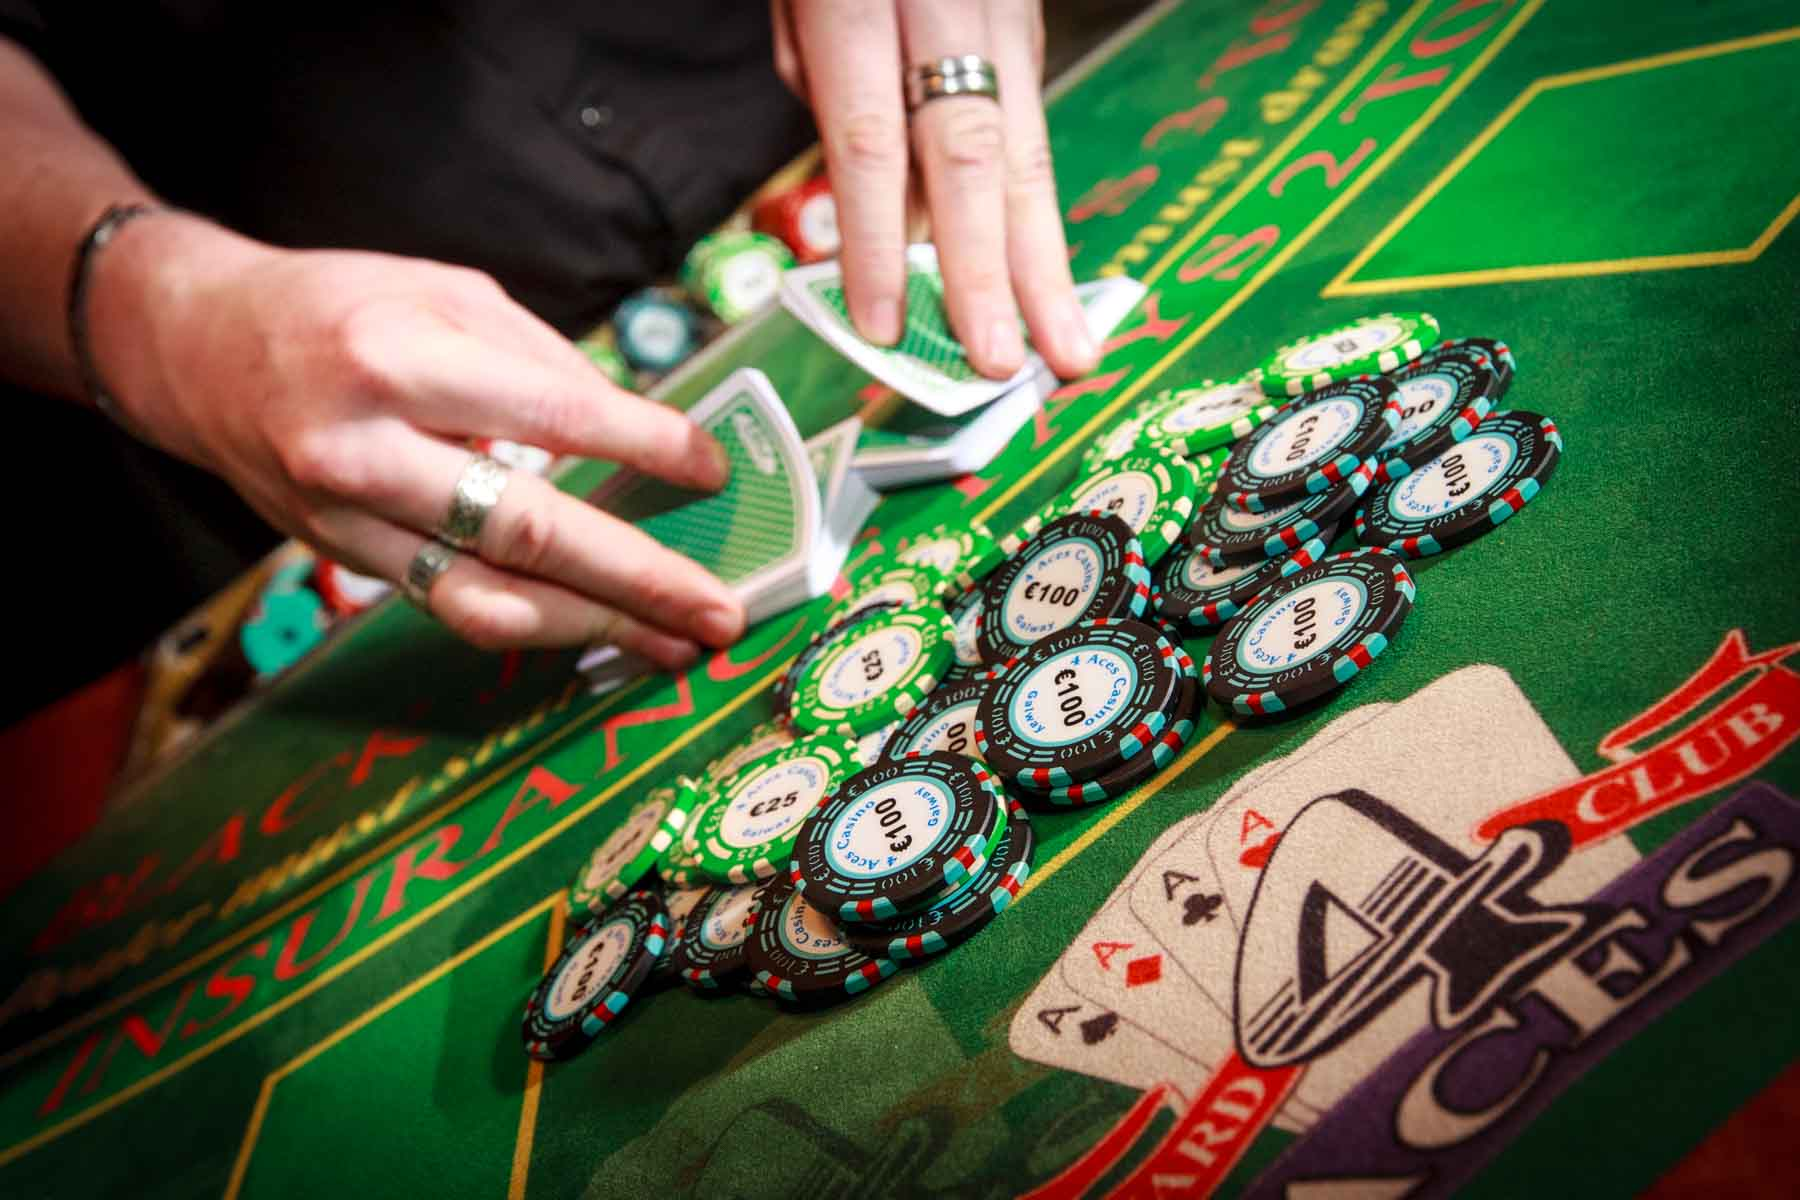 The 4 Aces Poker in Galway - Visit Galway